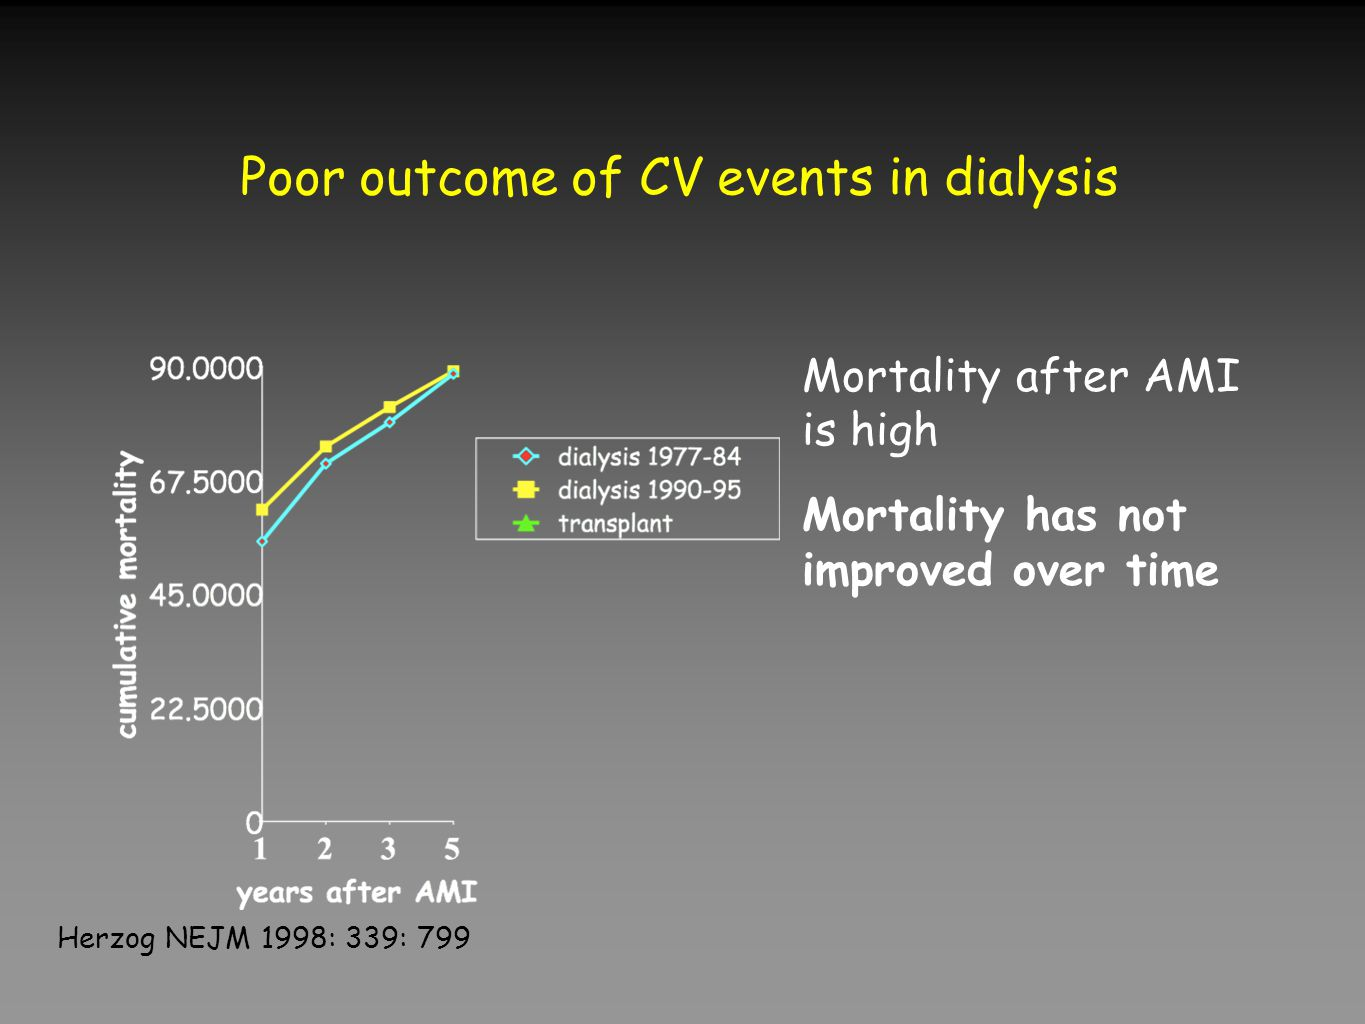 Poor outcome of CV events in dialysis